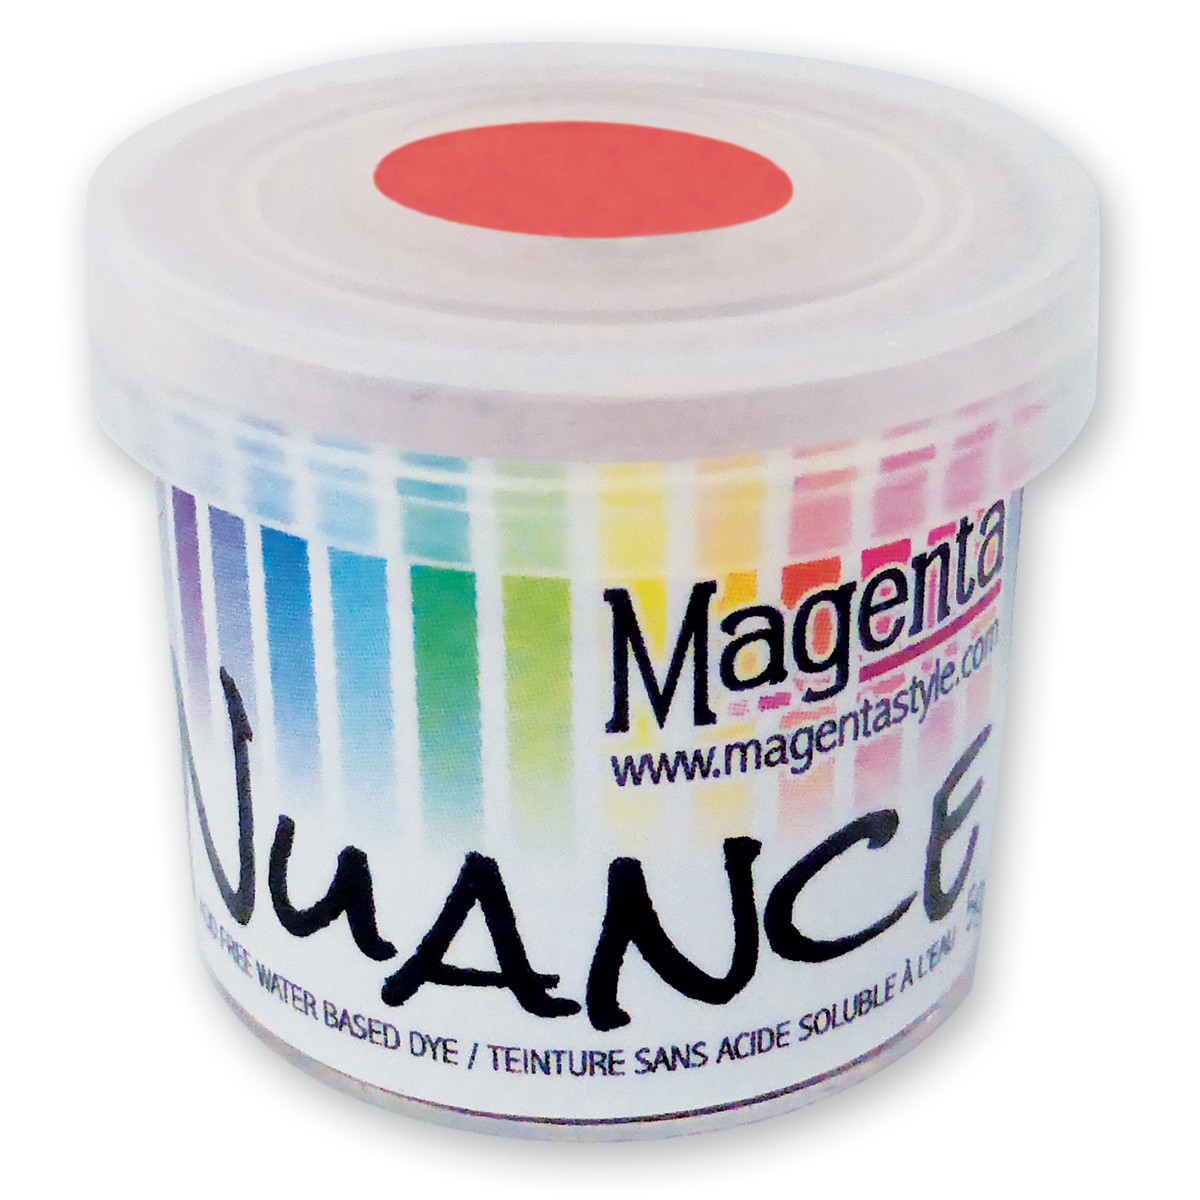 Magenta Nuance Powdered Dye-Scarlet